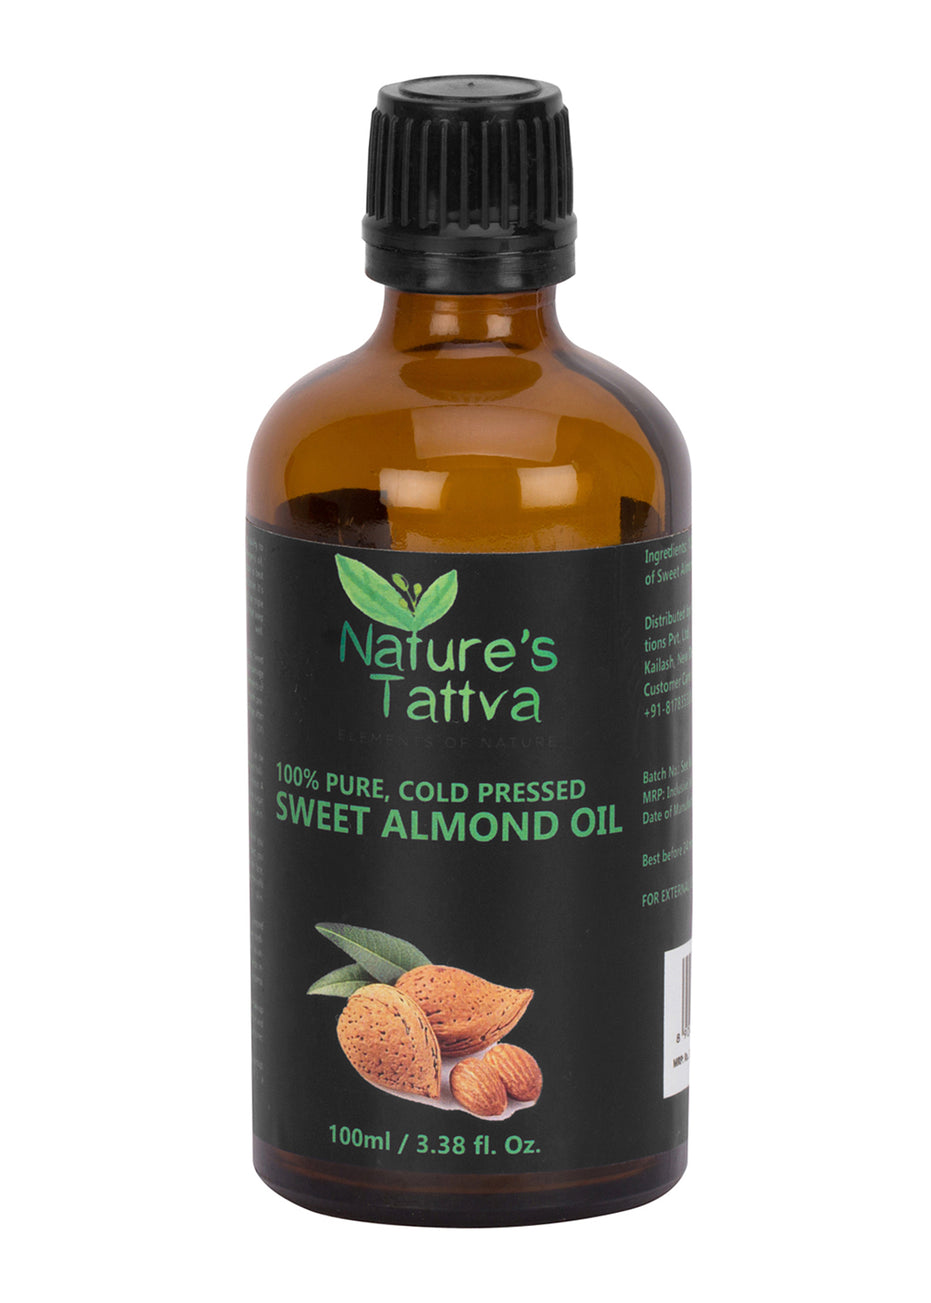 Nature's Tattva Pure Natural Sweet Almond Oil, 100ml, Beauty & Skin Care, Nature's Tattva, ihaat, [made_in_india], [handmade] - ihaat